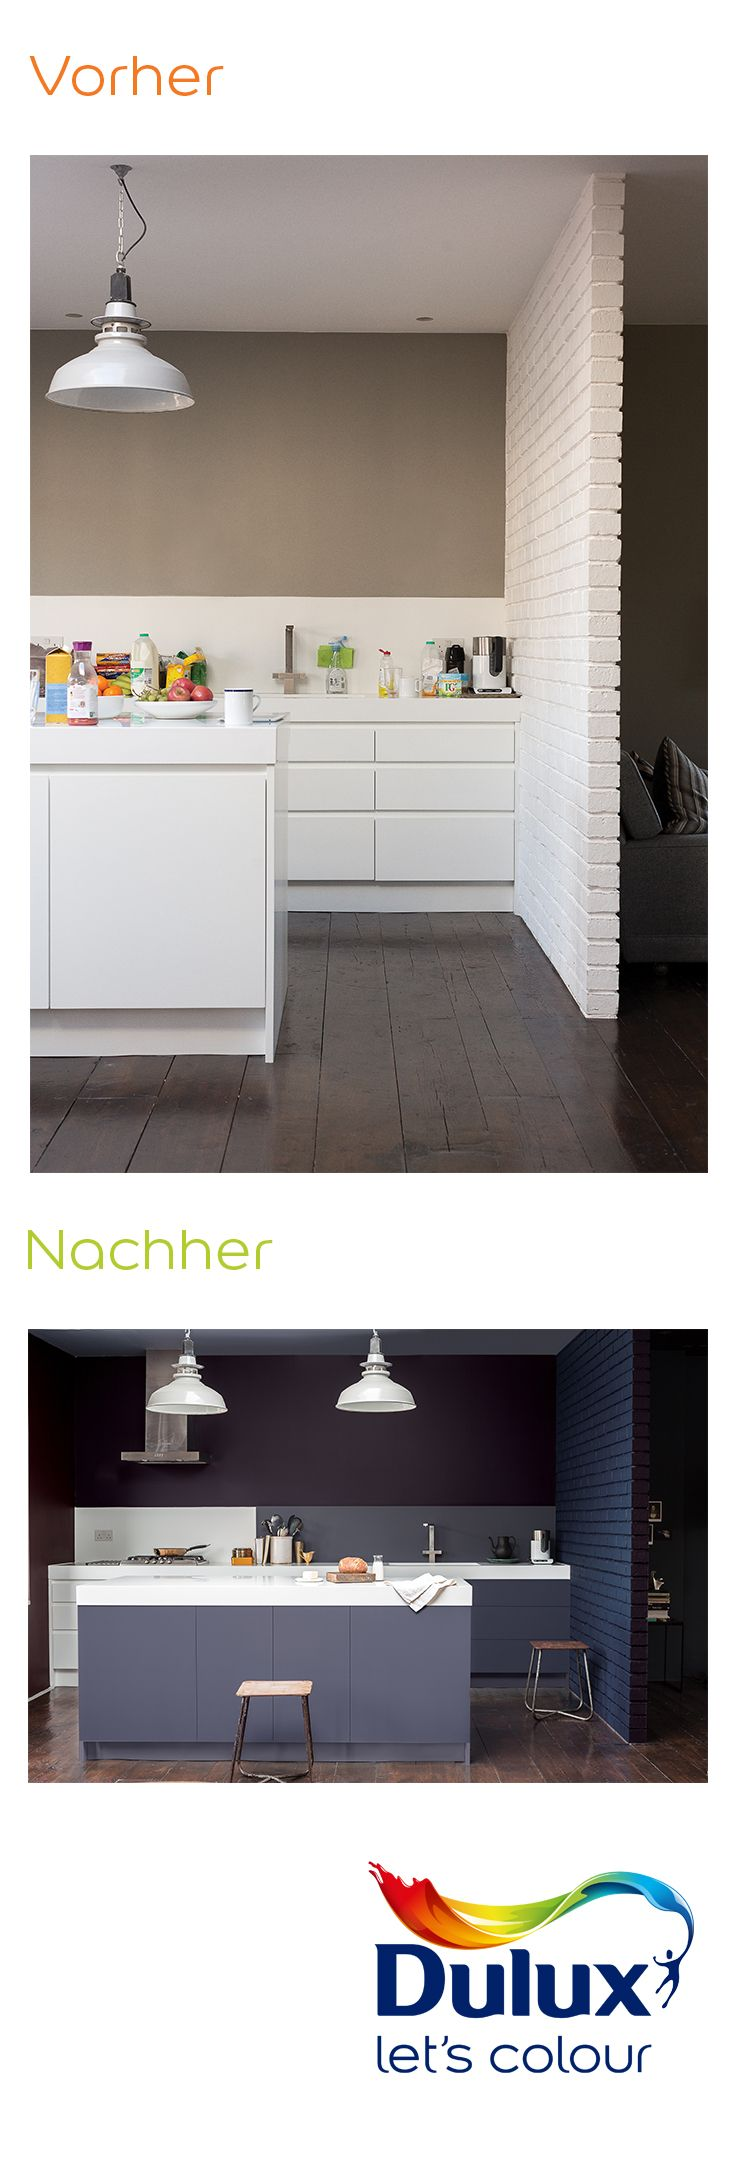 25 best Vorher-/Nachher Bilder images on Pinterest | Before after ...